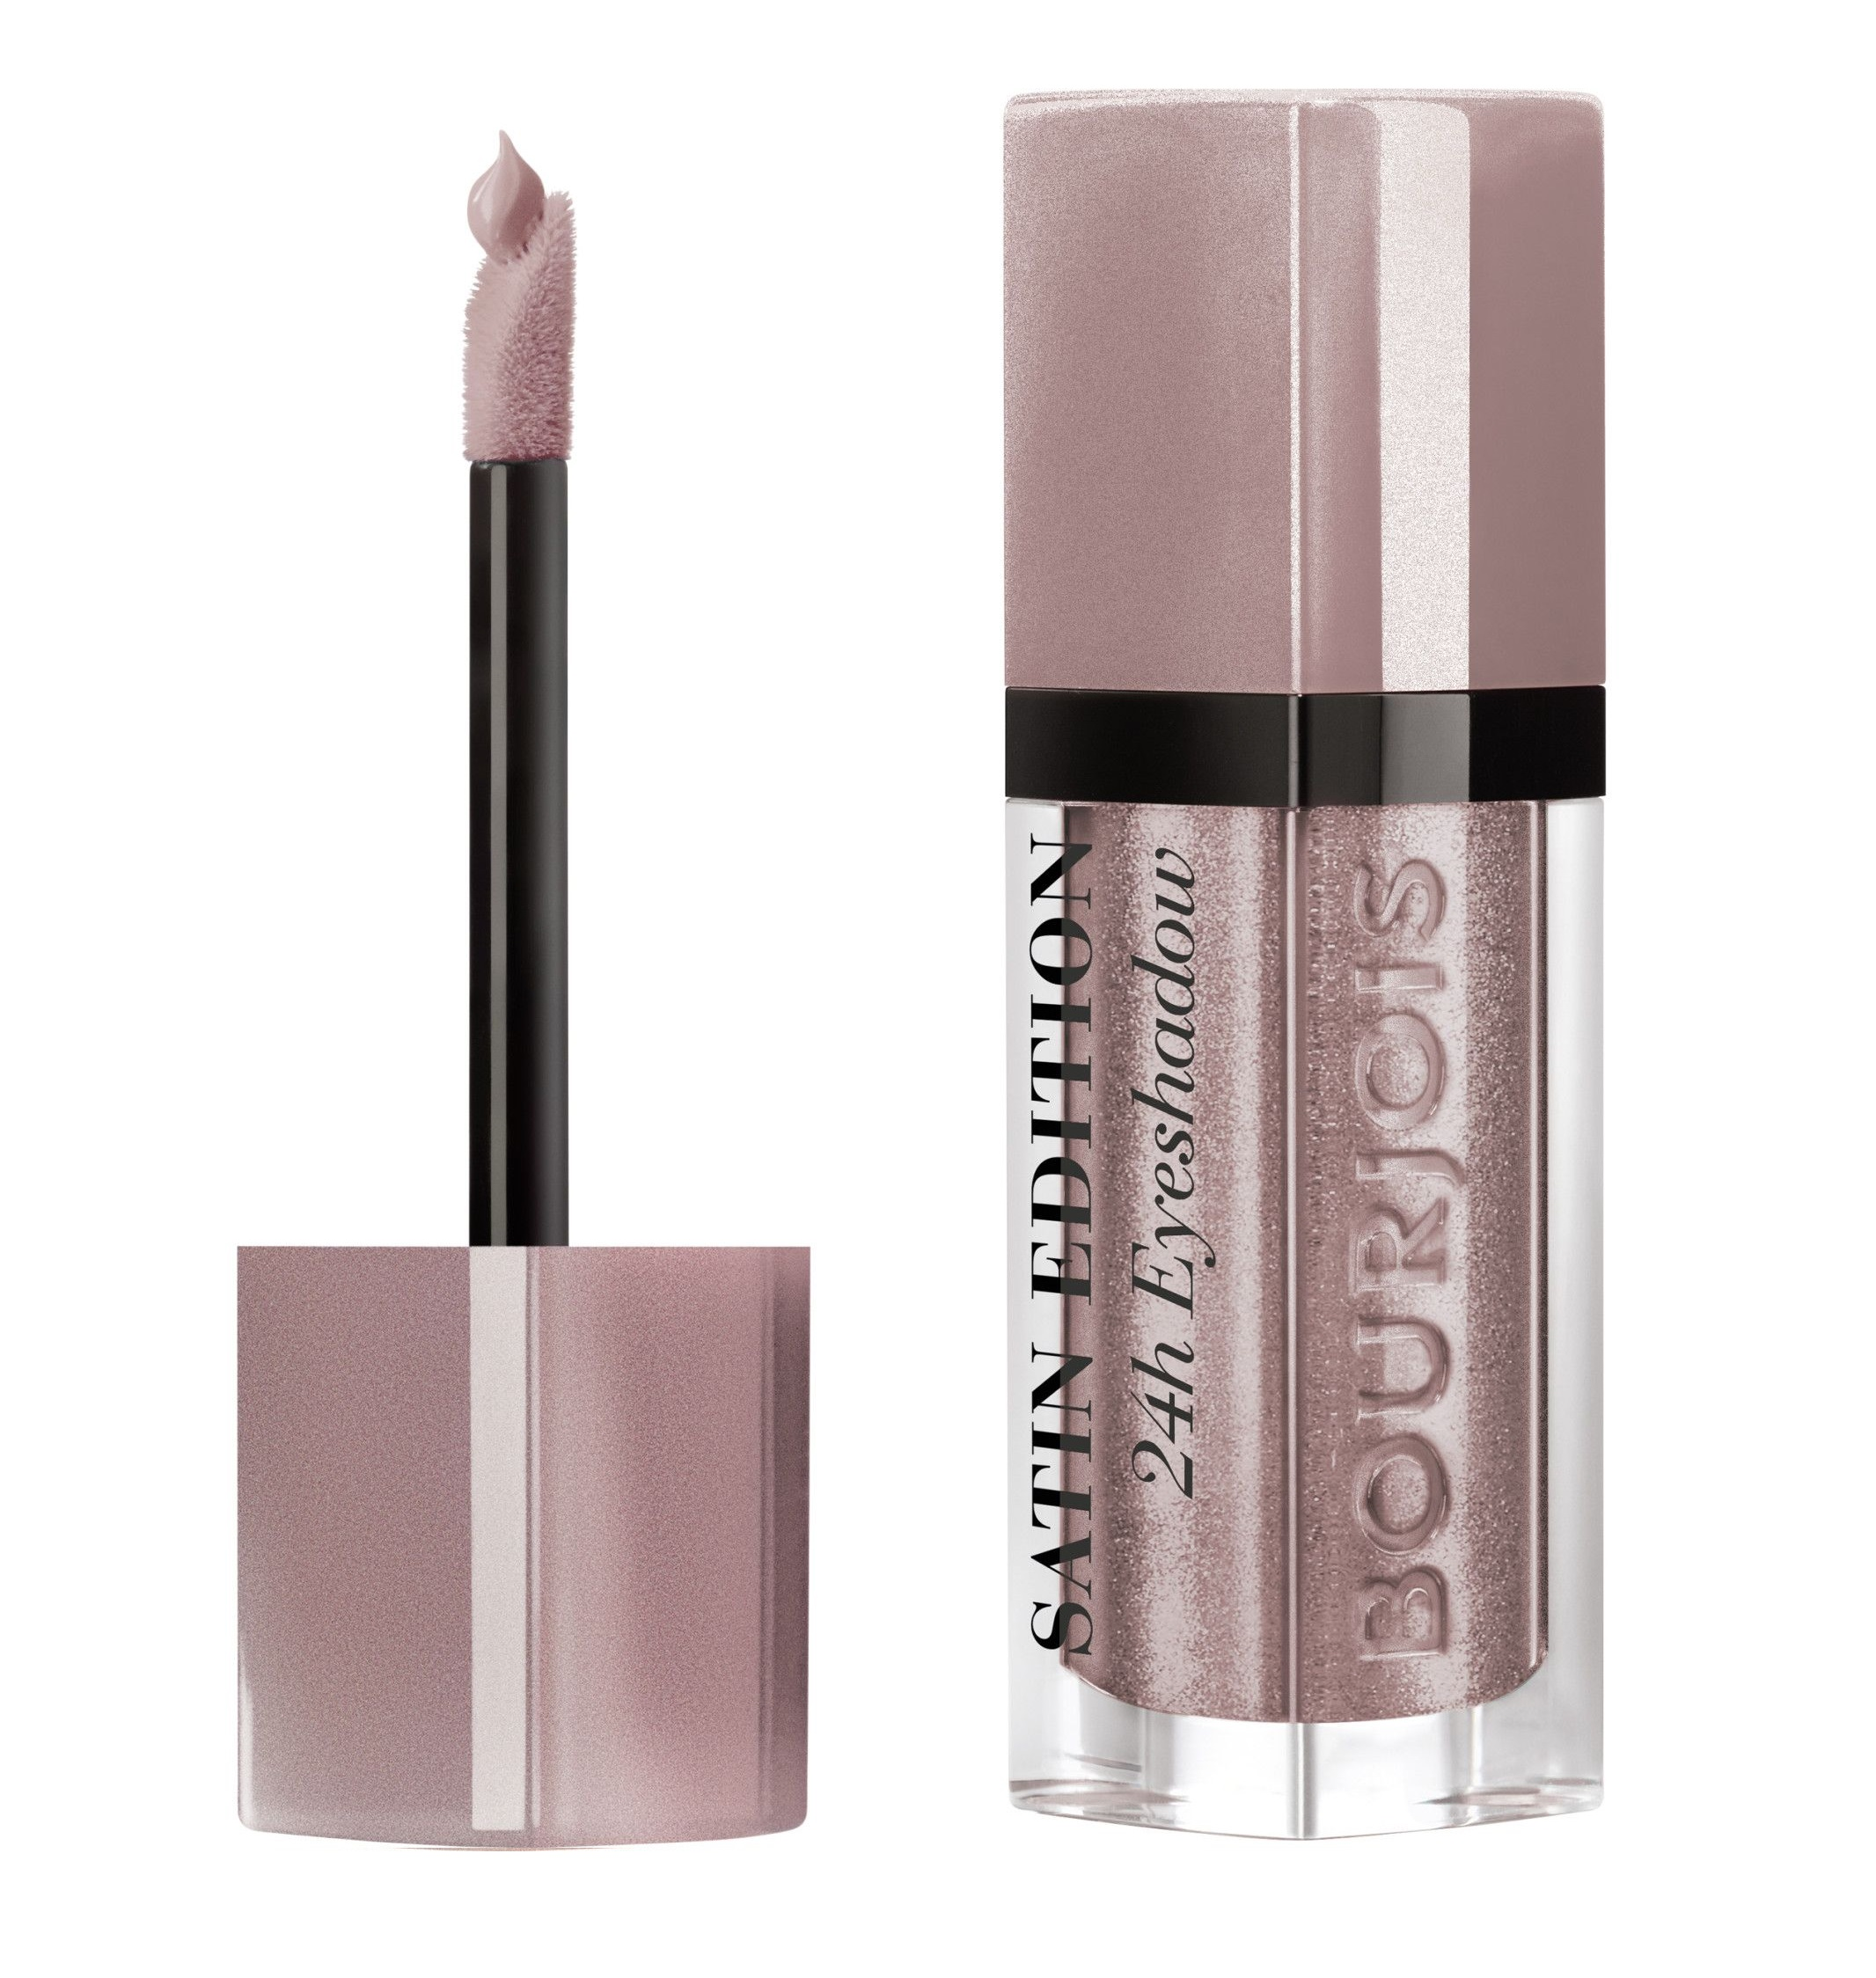 BOURJOIS SOMBRA OJOS SATIN EDITION 24H 03 MAUVE YOUT BODY